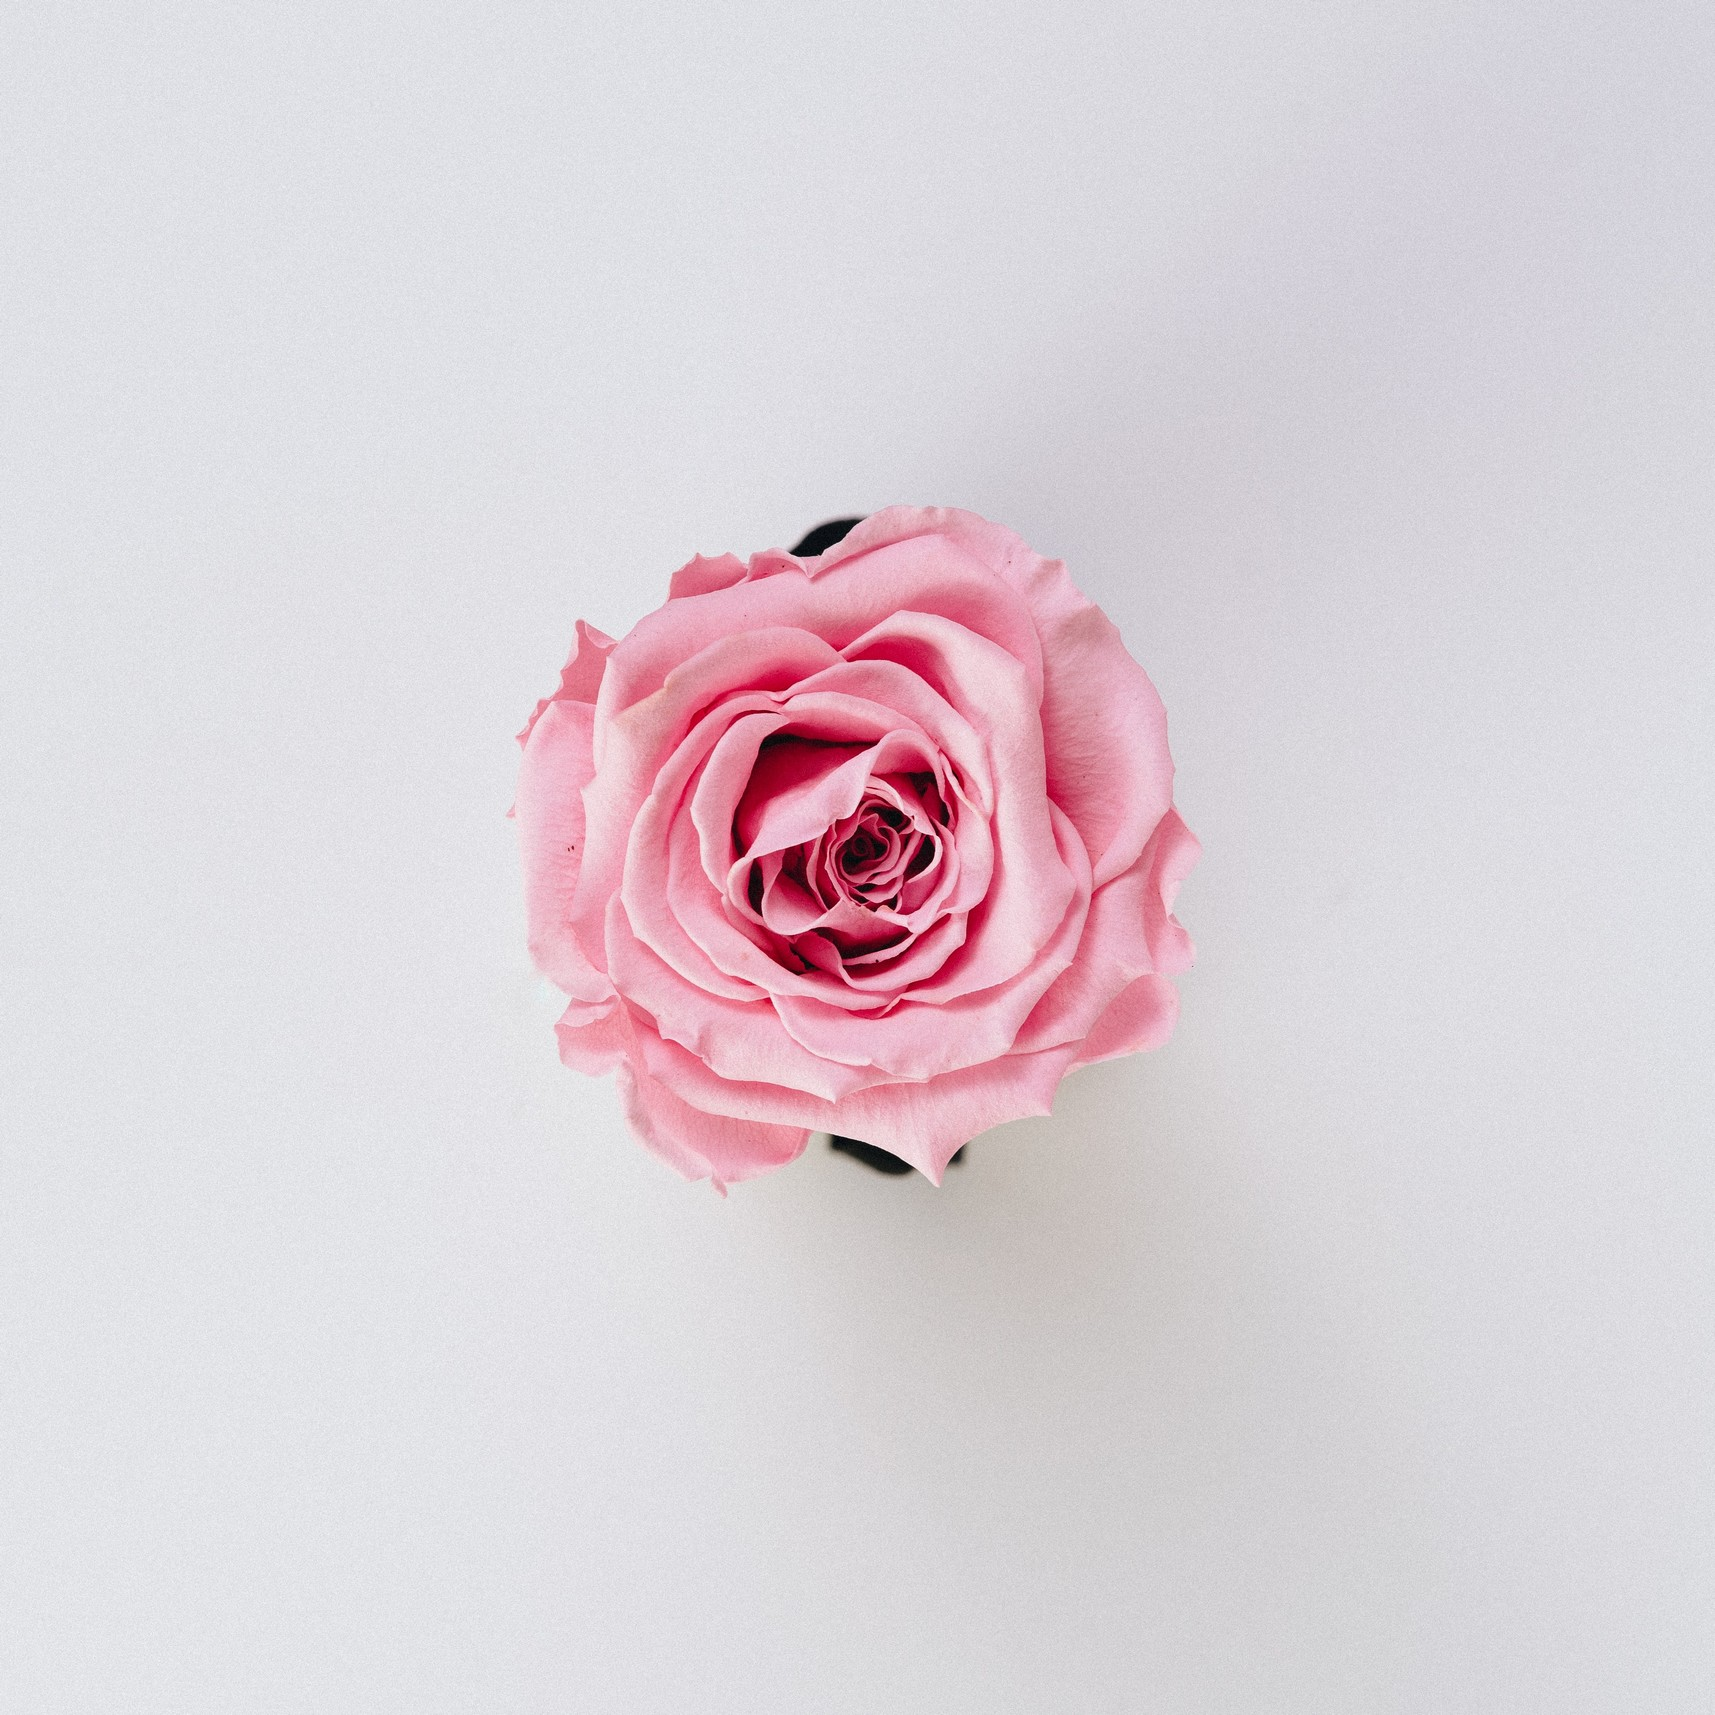 a photo of a rose flower from above, showing petals with a blank background.